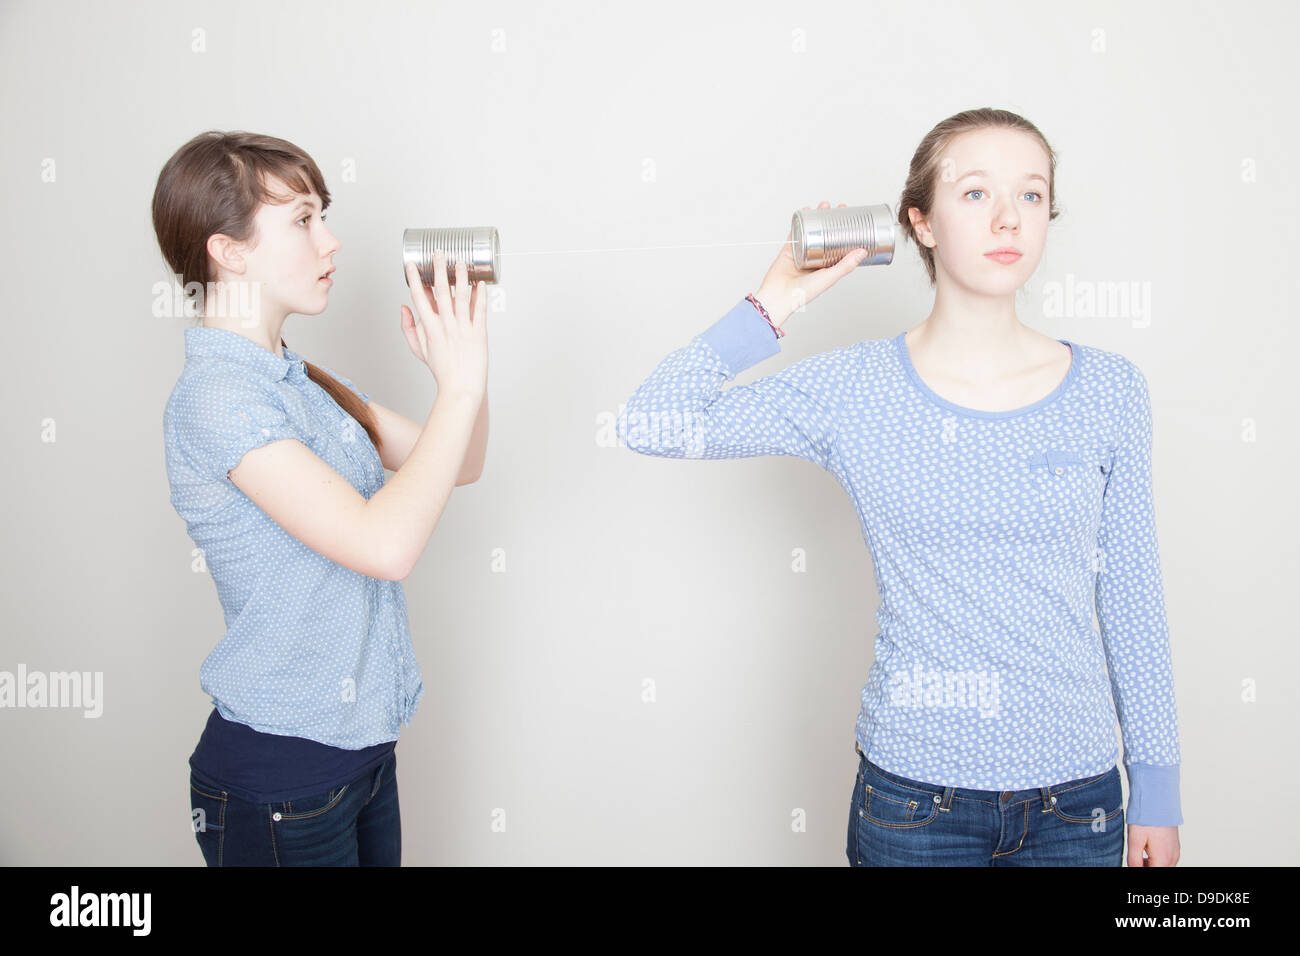 Two girls with tin cans - Stock Image